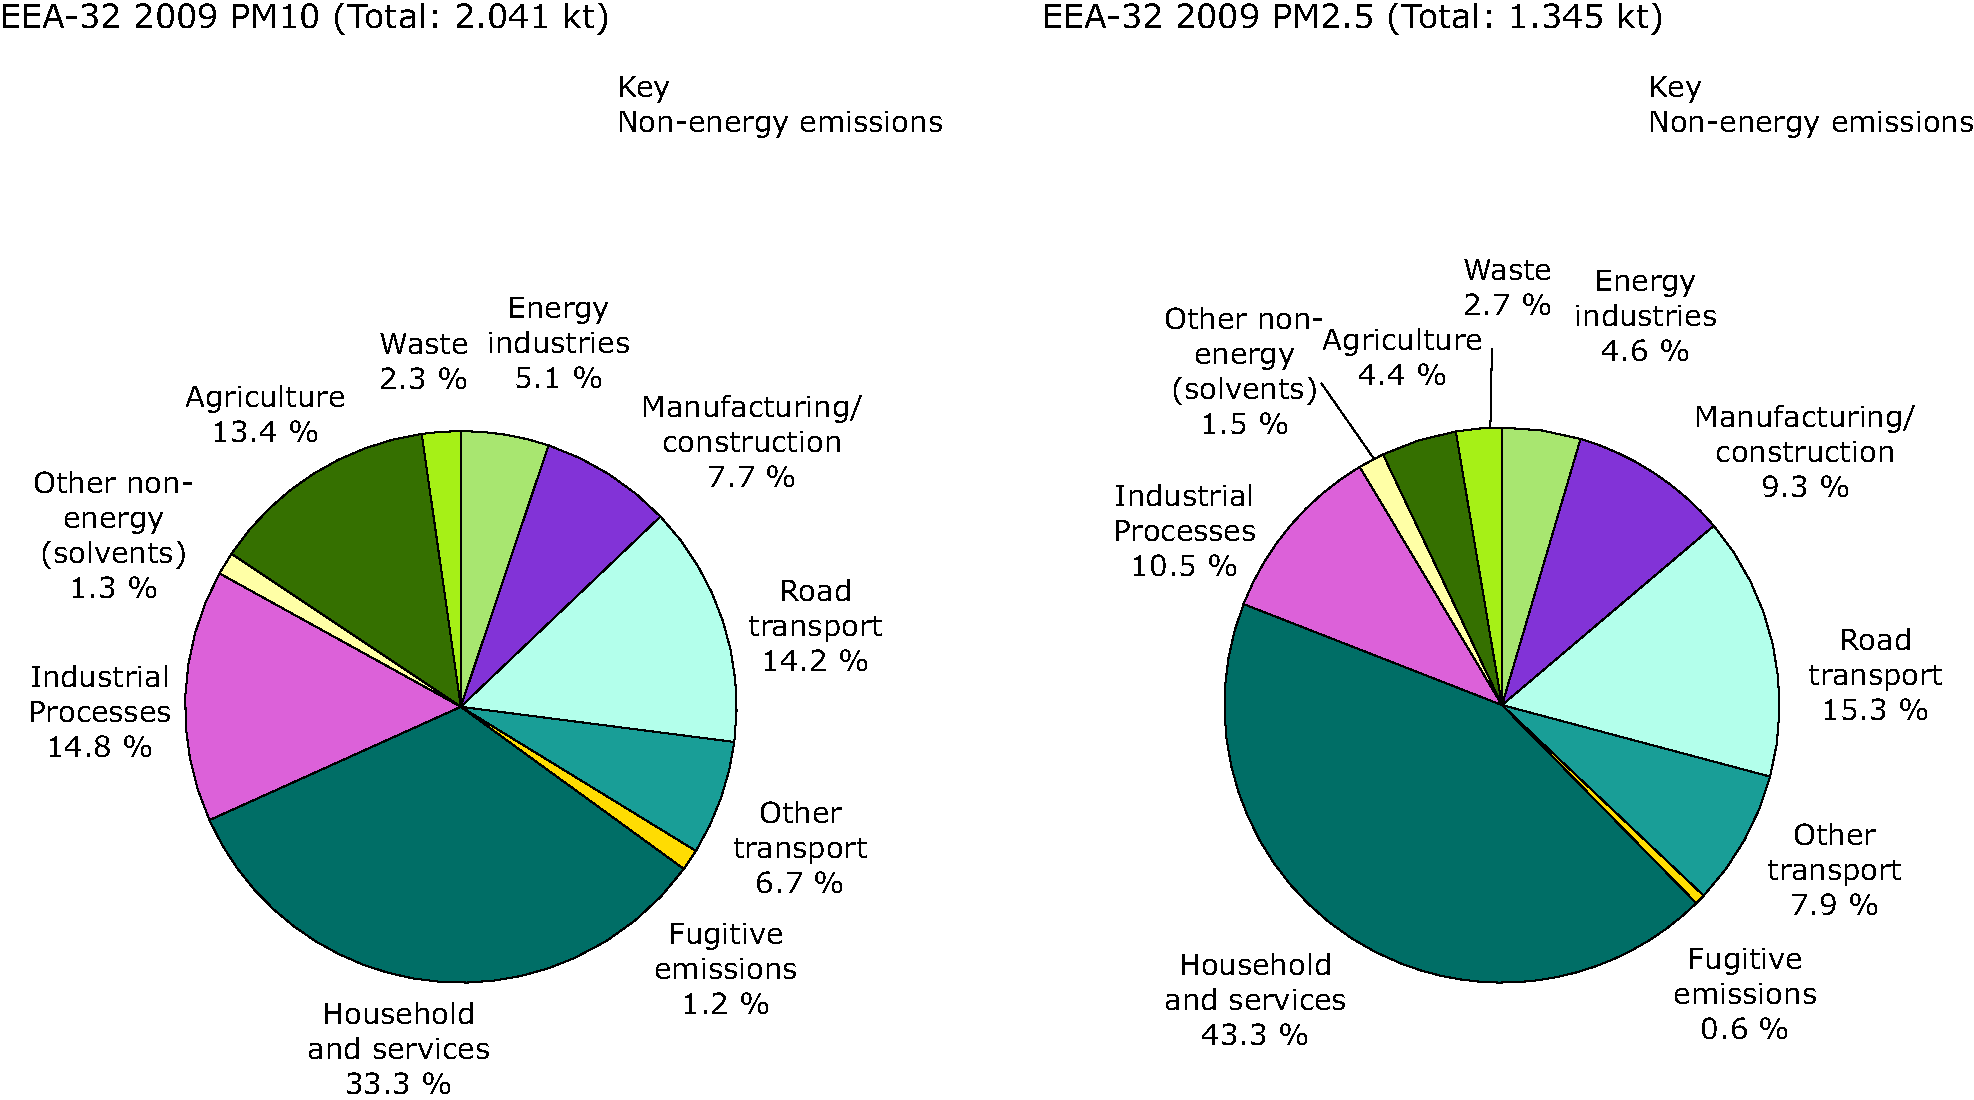 Contribution of different sectors (energy and non-energy) to total emissions of PM10 and PM2.5, 2009, EEA-32